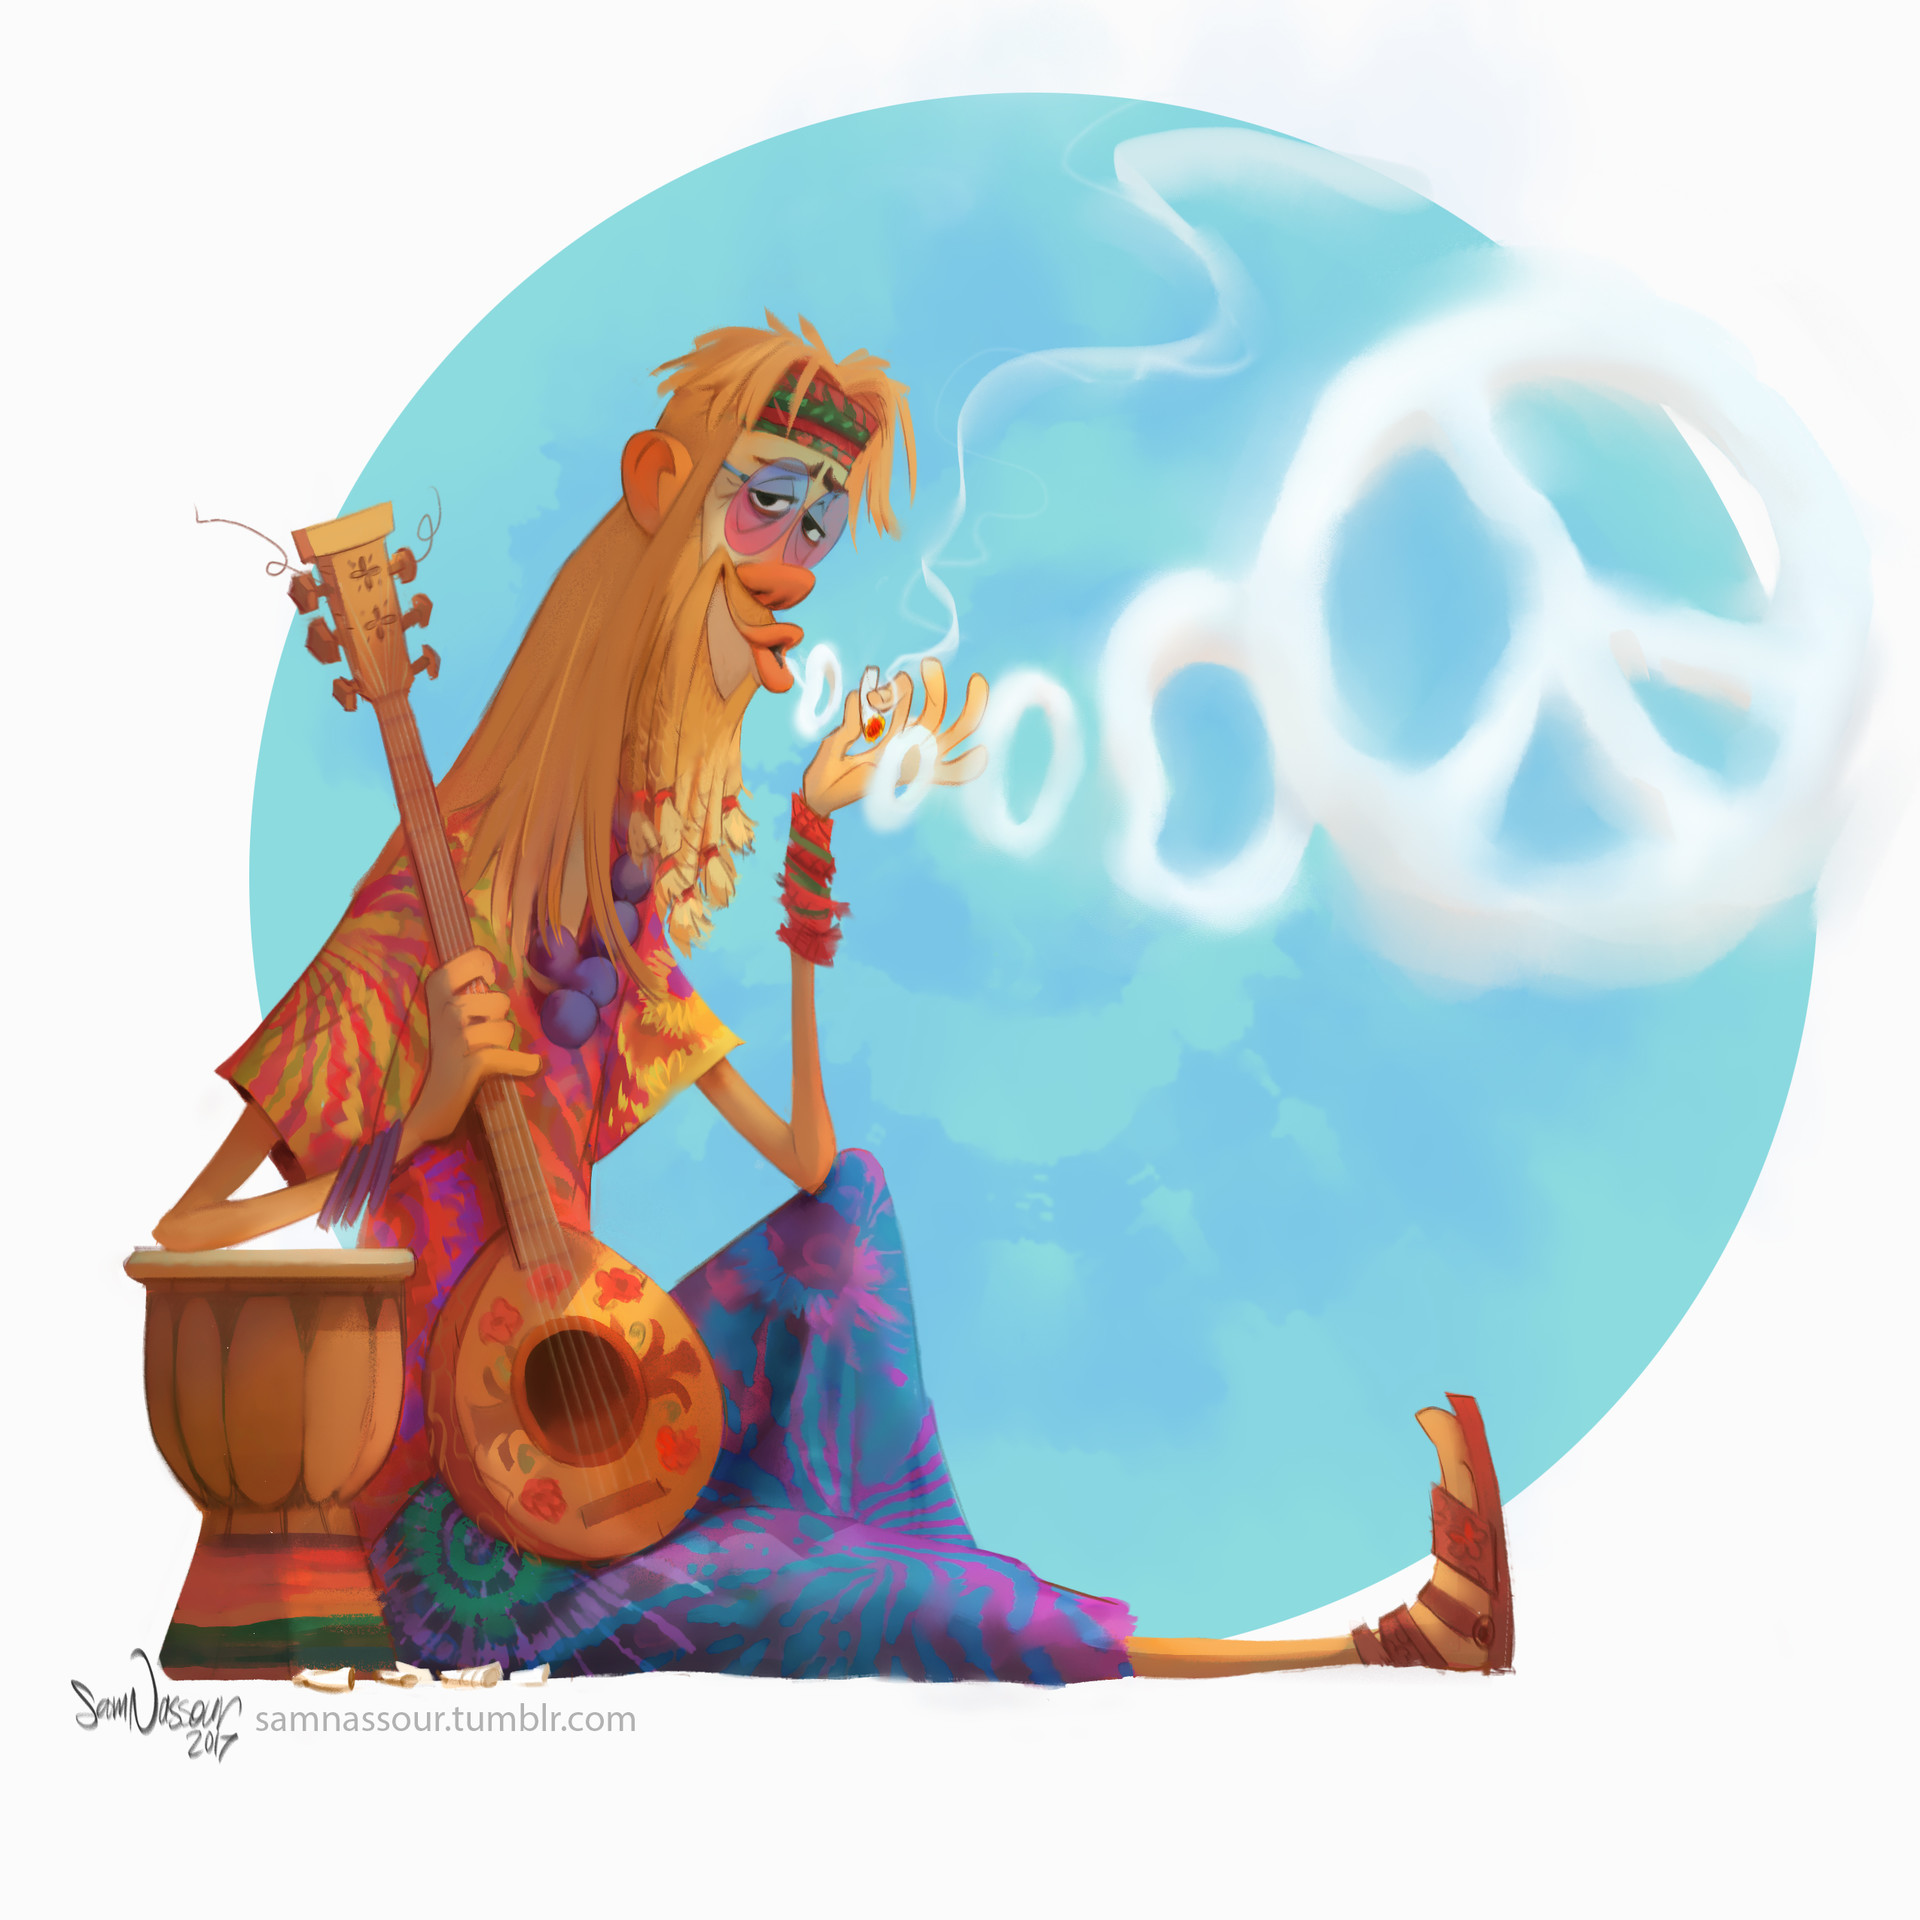 Sam nassour hippie post